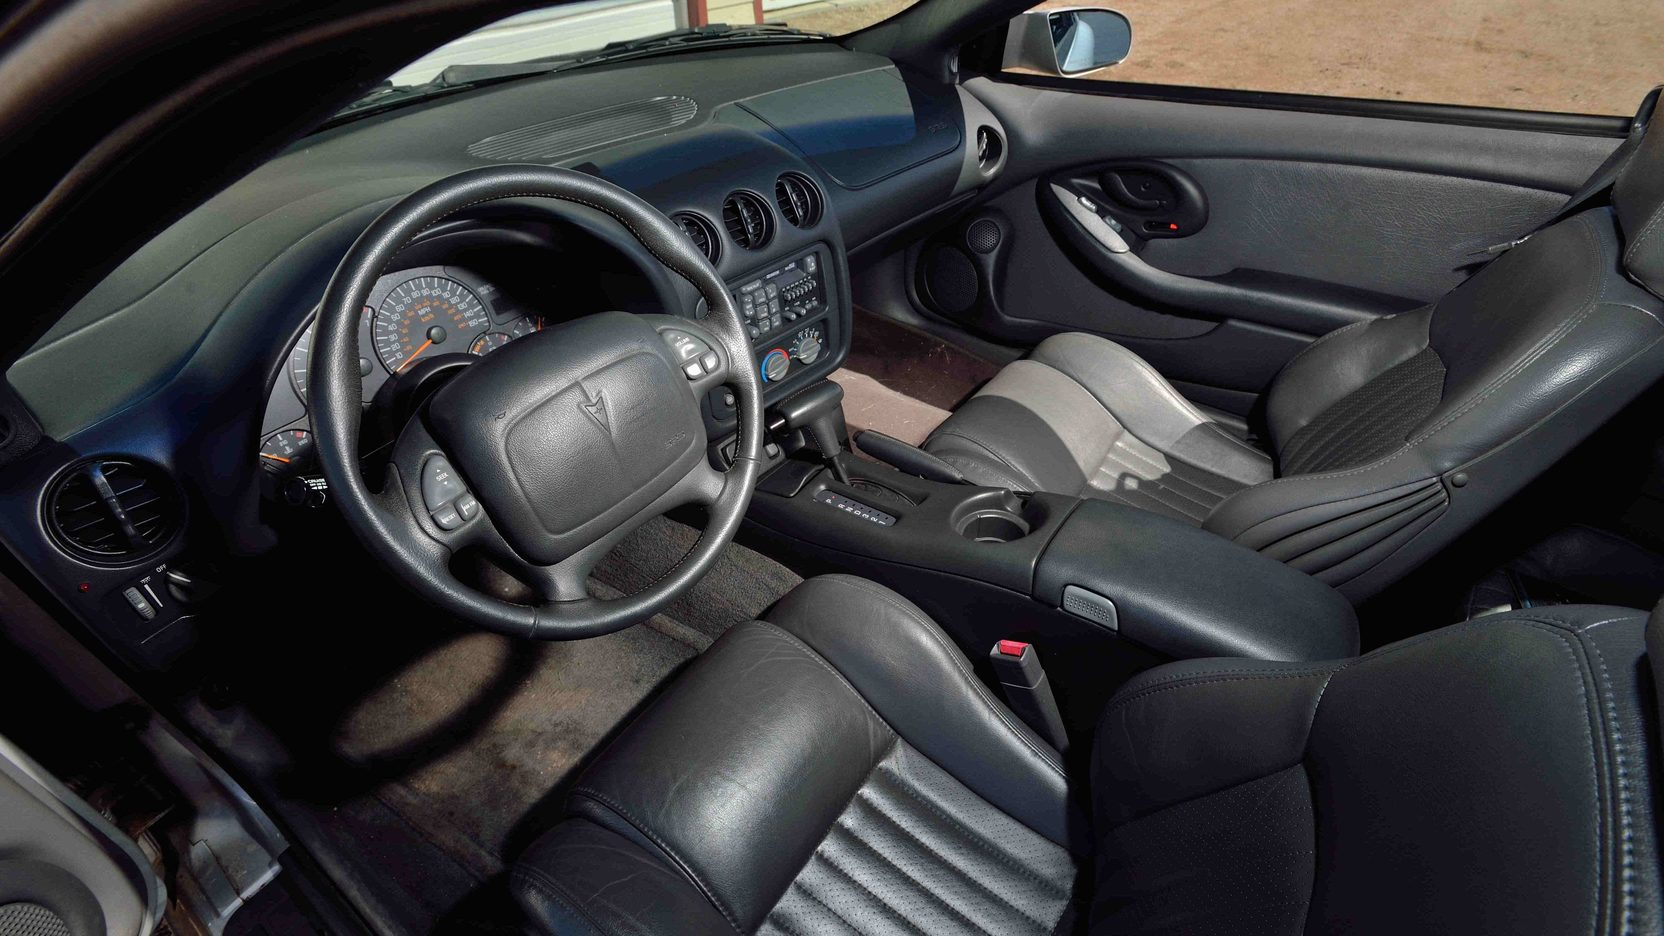 1997 Pontiac Firebird interior